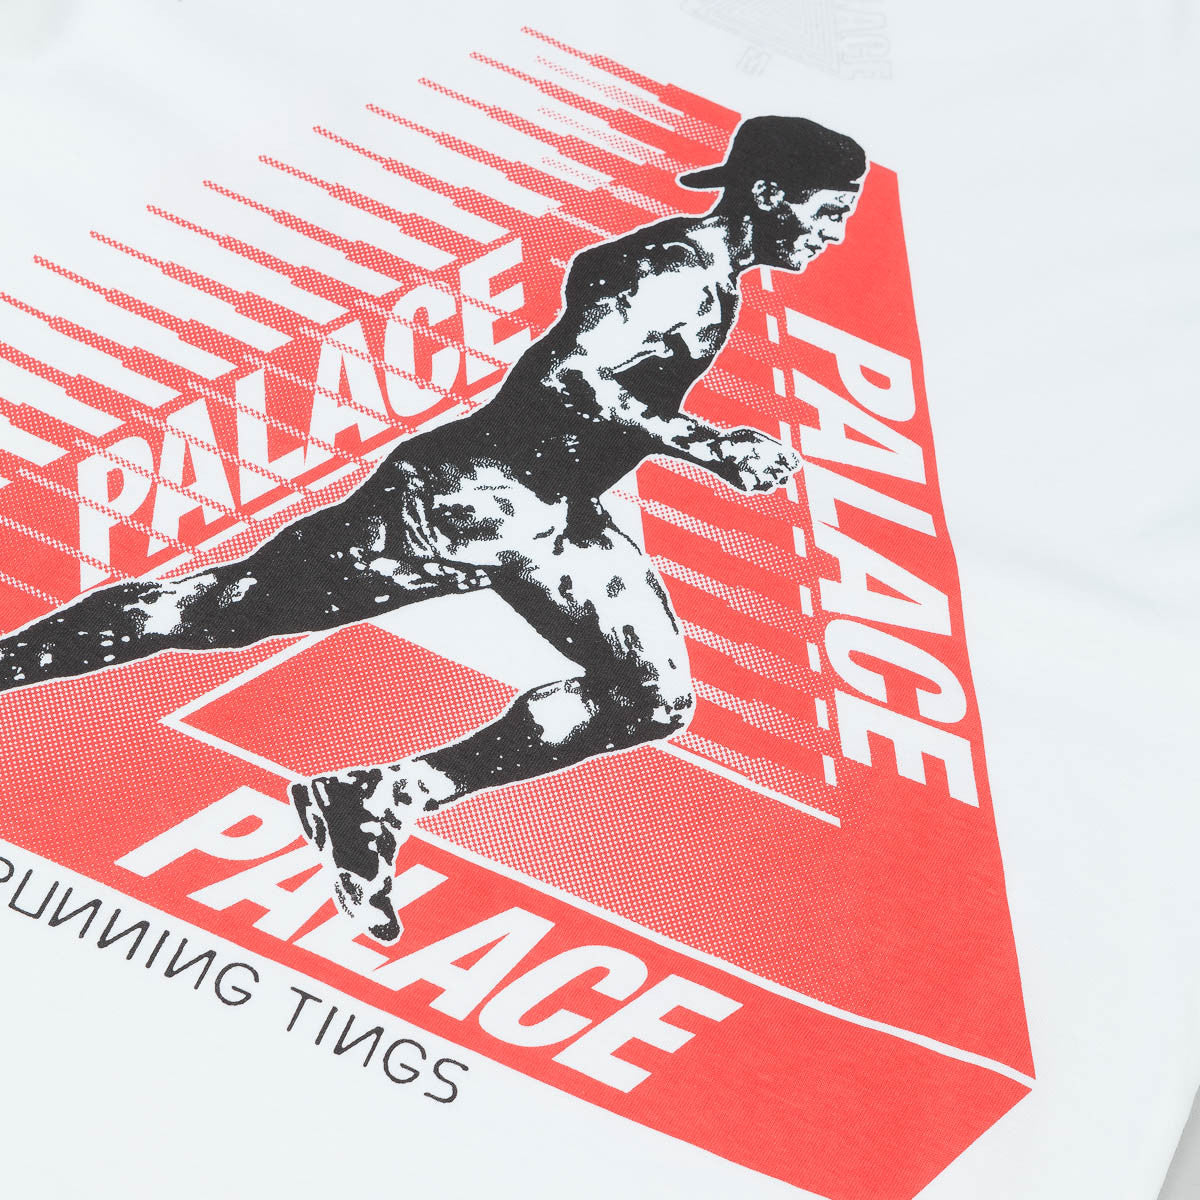 Palace Running Tings T-Shirt - White